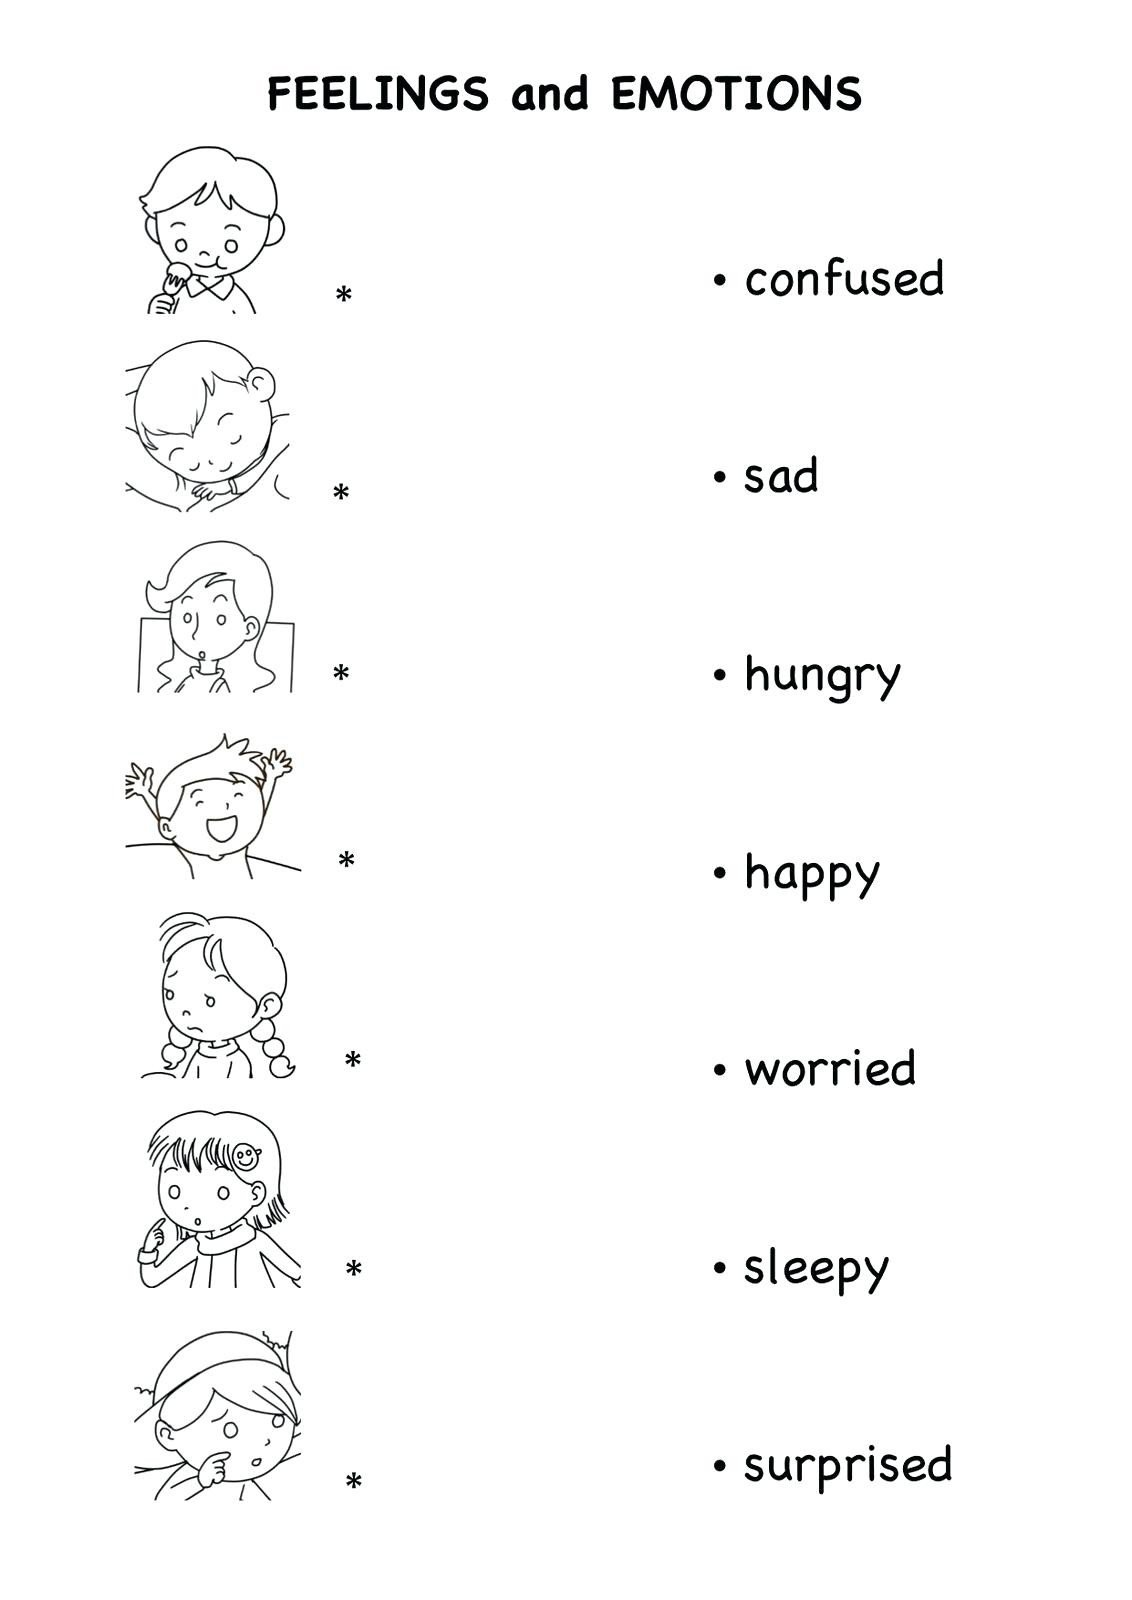 feelings and emotions worksheets emotion for kids teaching kindergarten pdf preschool family chart school child opposite word easter art ideas babies dinosaur math domestic